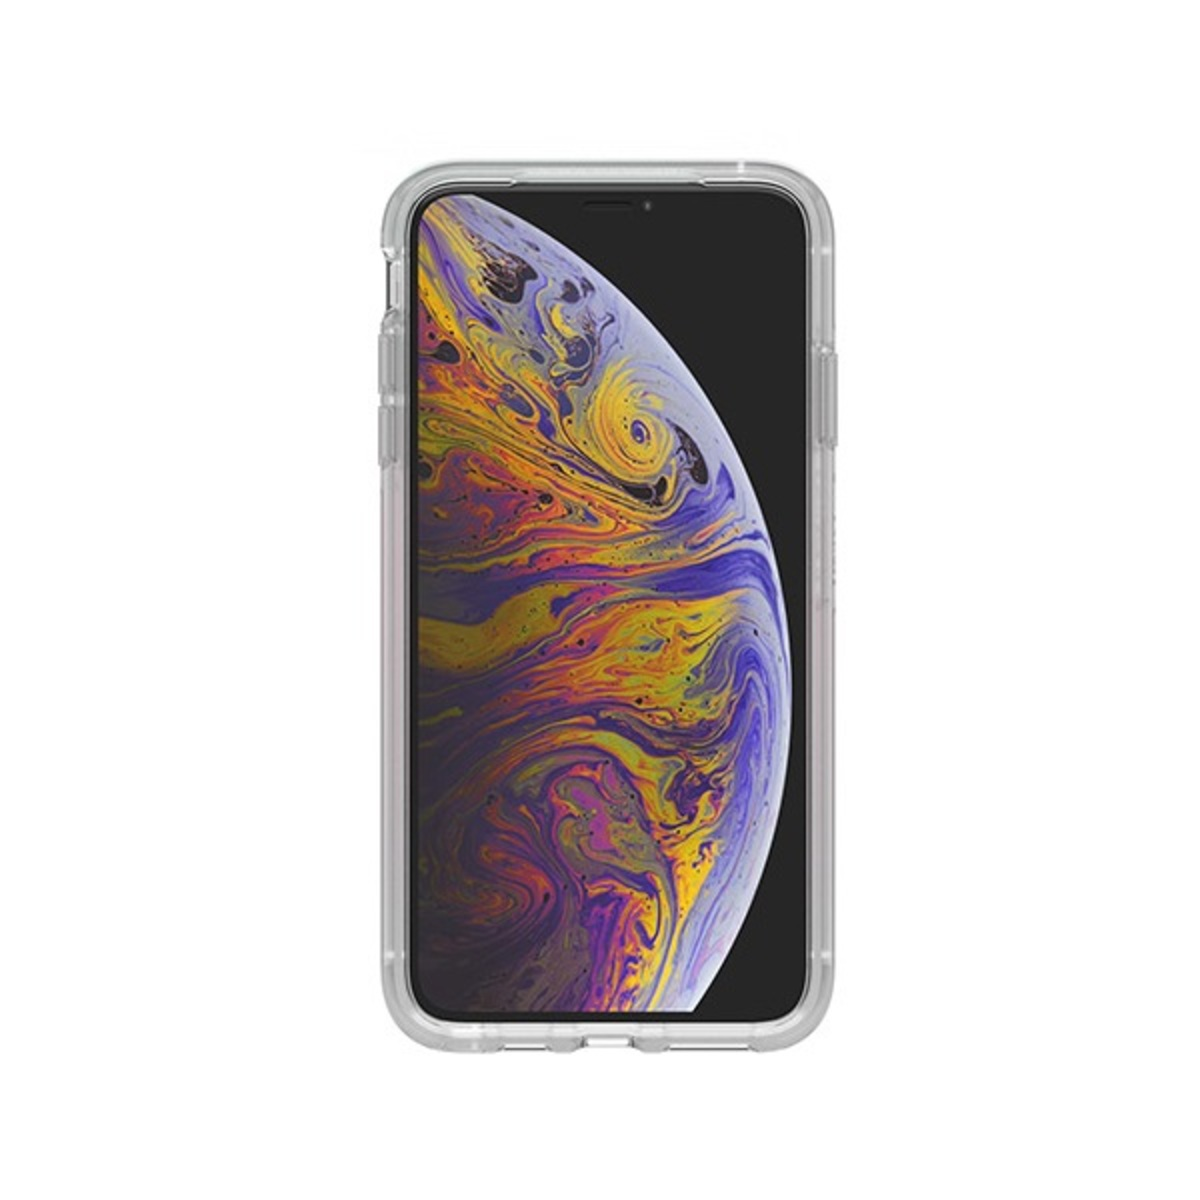 SYMMETRY SLEEK PROTECTION CASE FOR IPHONE XS MAX - GRADIENT ENERGY ( 77-60087 )